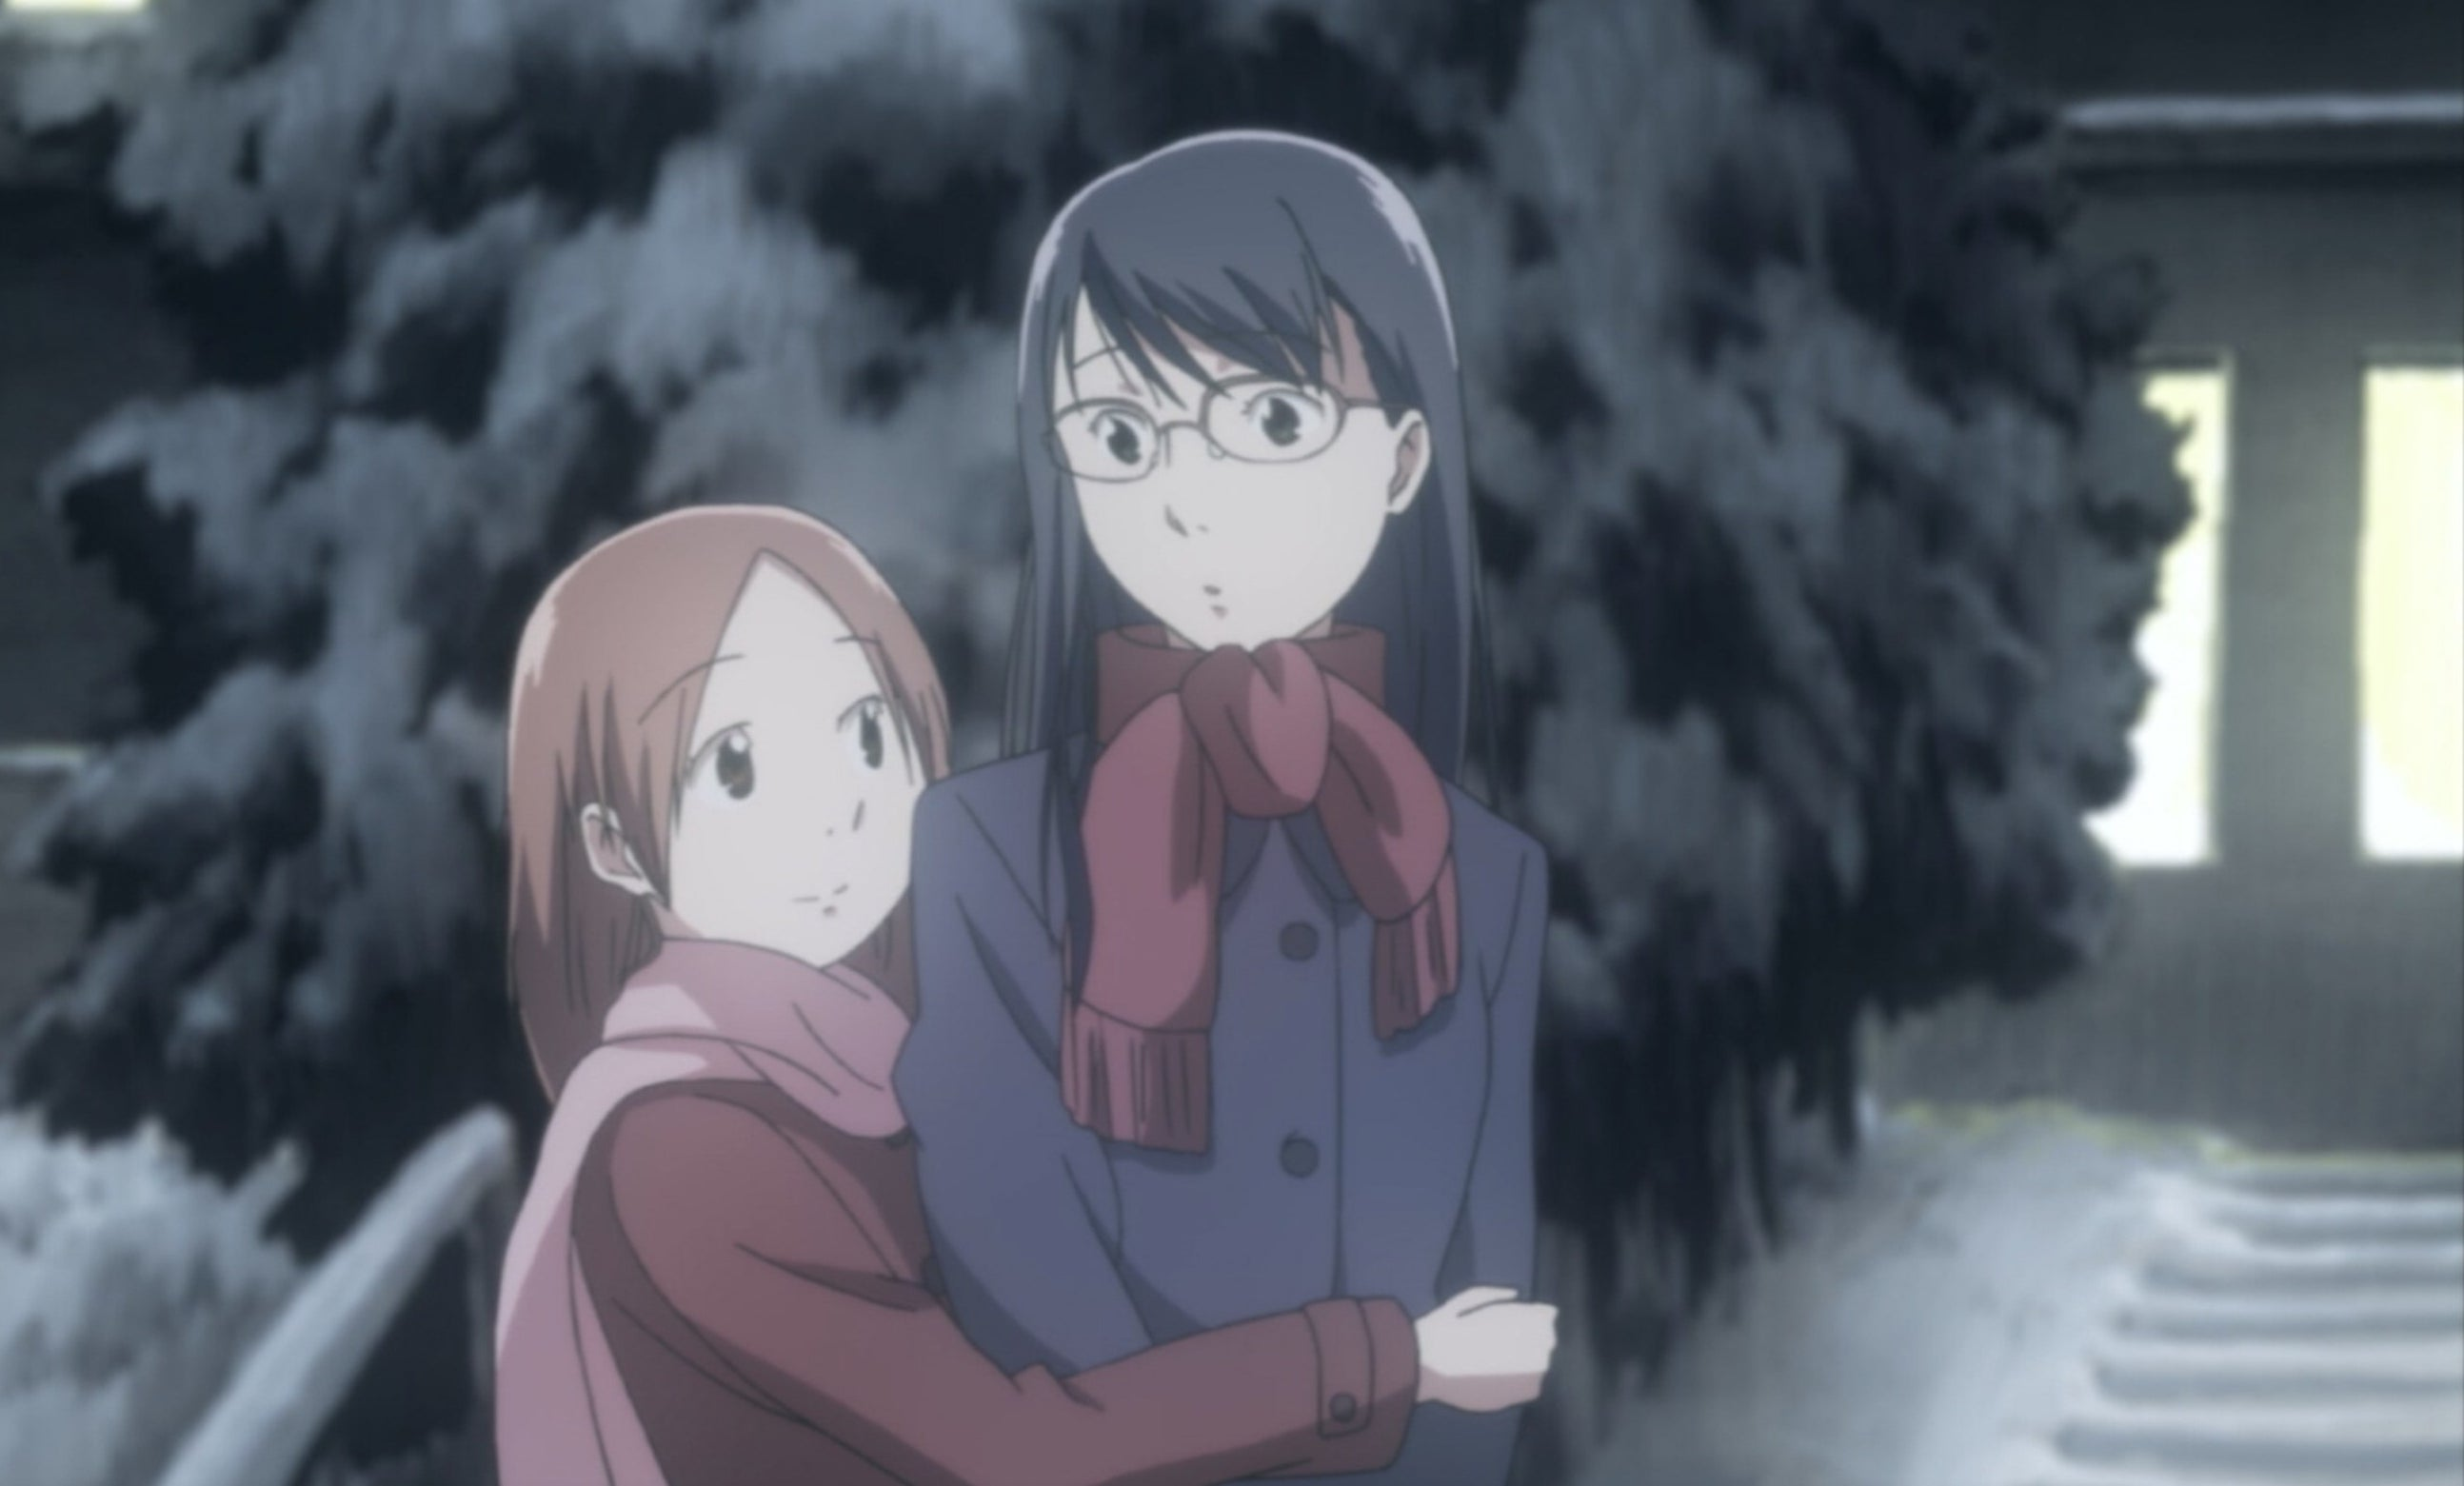 Akira hugging Fumi outside in the snow.